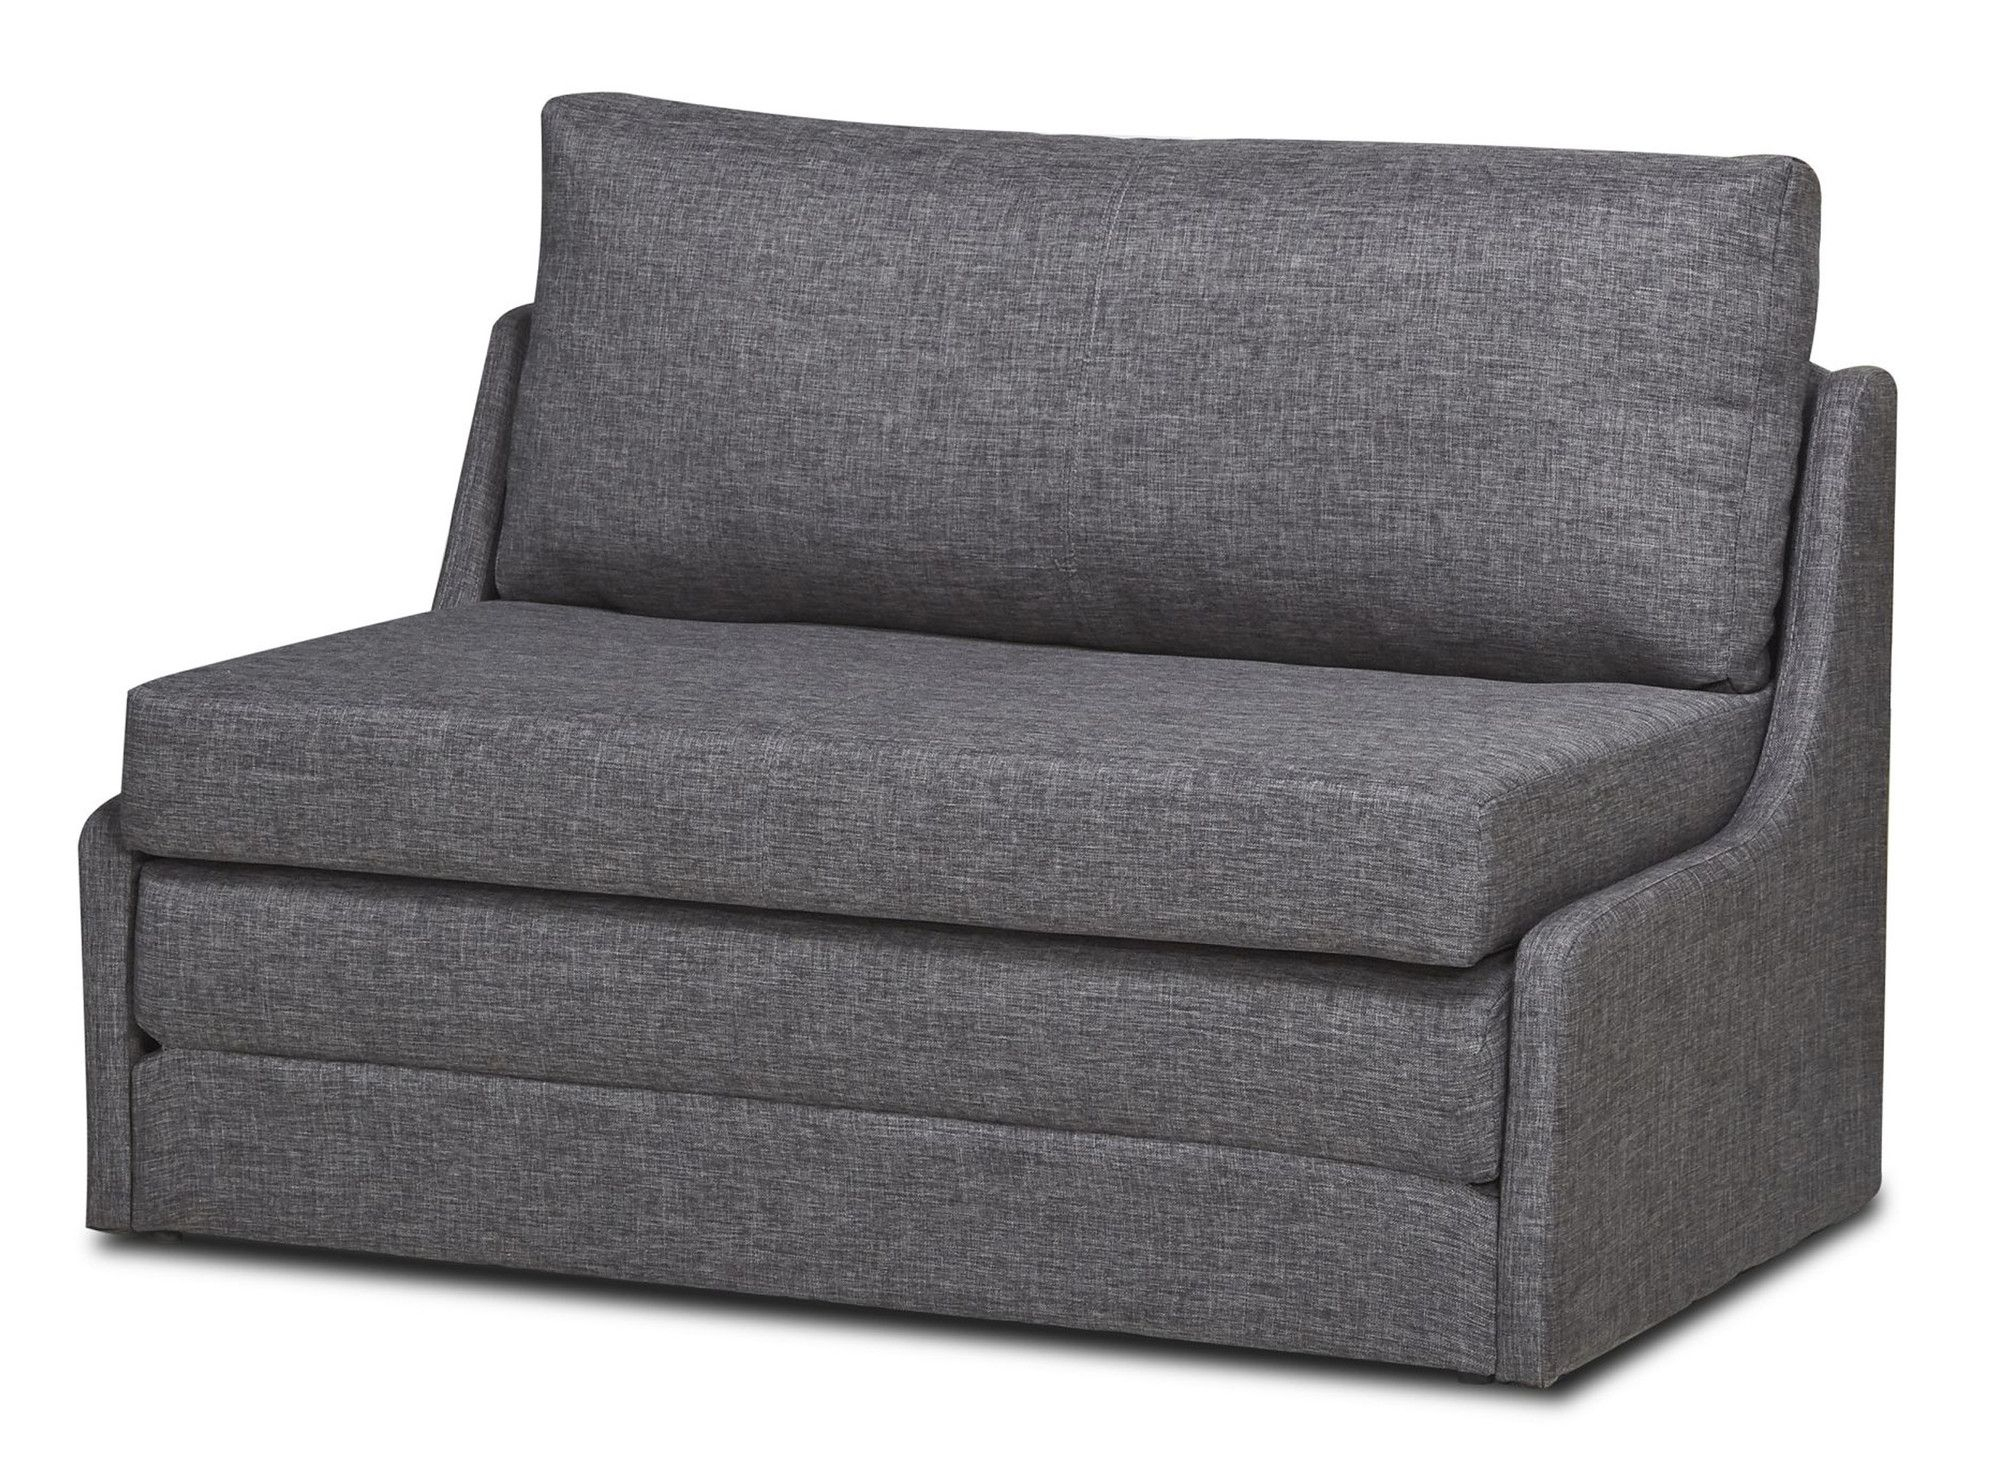 Gilmore Sofa Best Sleeper Sofa Sofas For Small Spaces pertaining to proportions 2000 X 1469